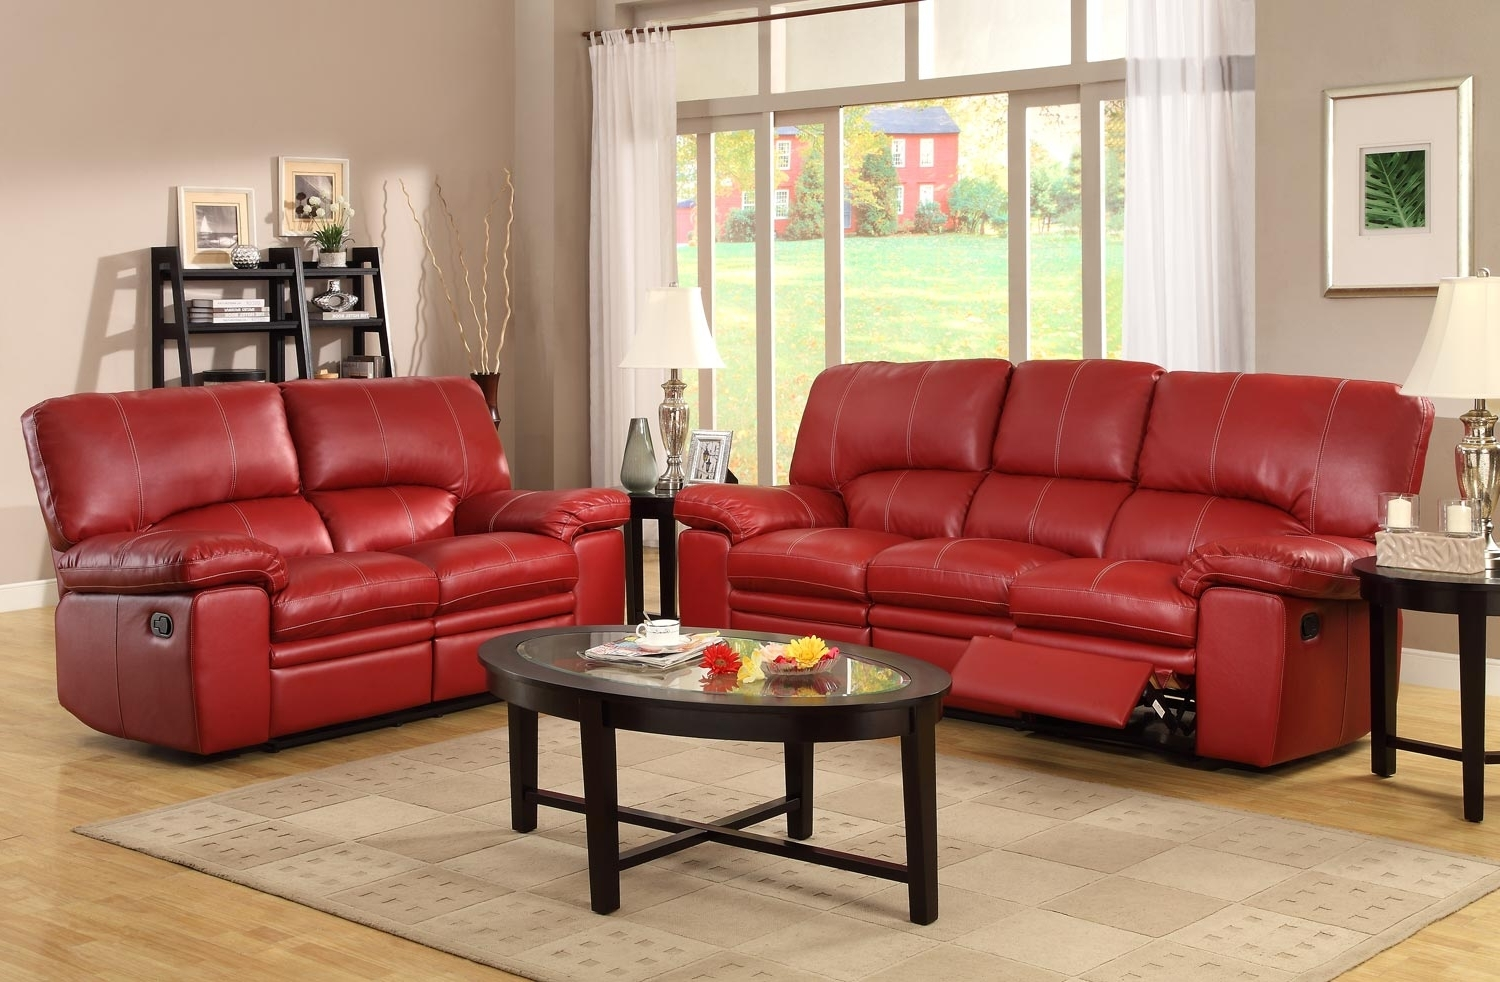 Red Leather Couches For Living Room For Most Popular Great Red Leather Sofa Set 75 In Living Room Sofa Ideas With Red (View 9 of 15)